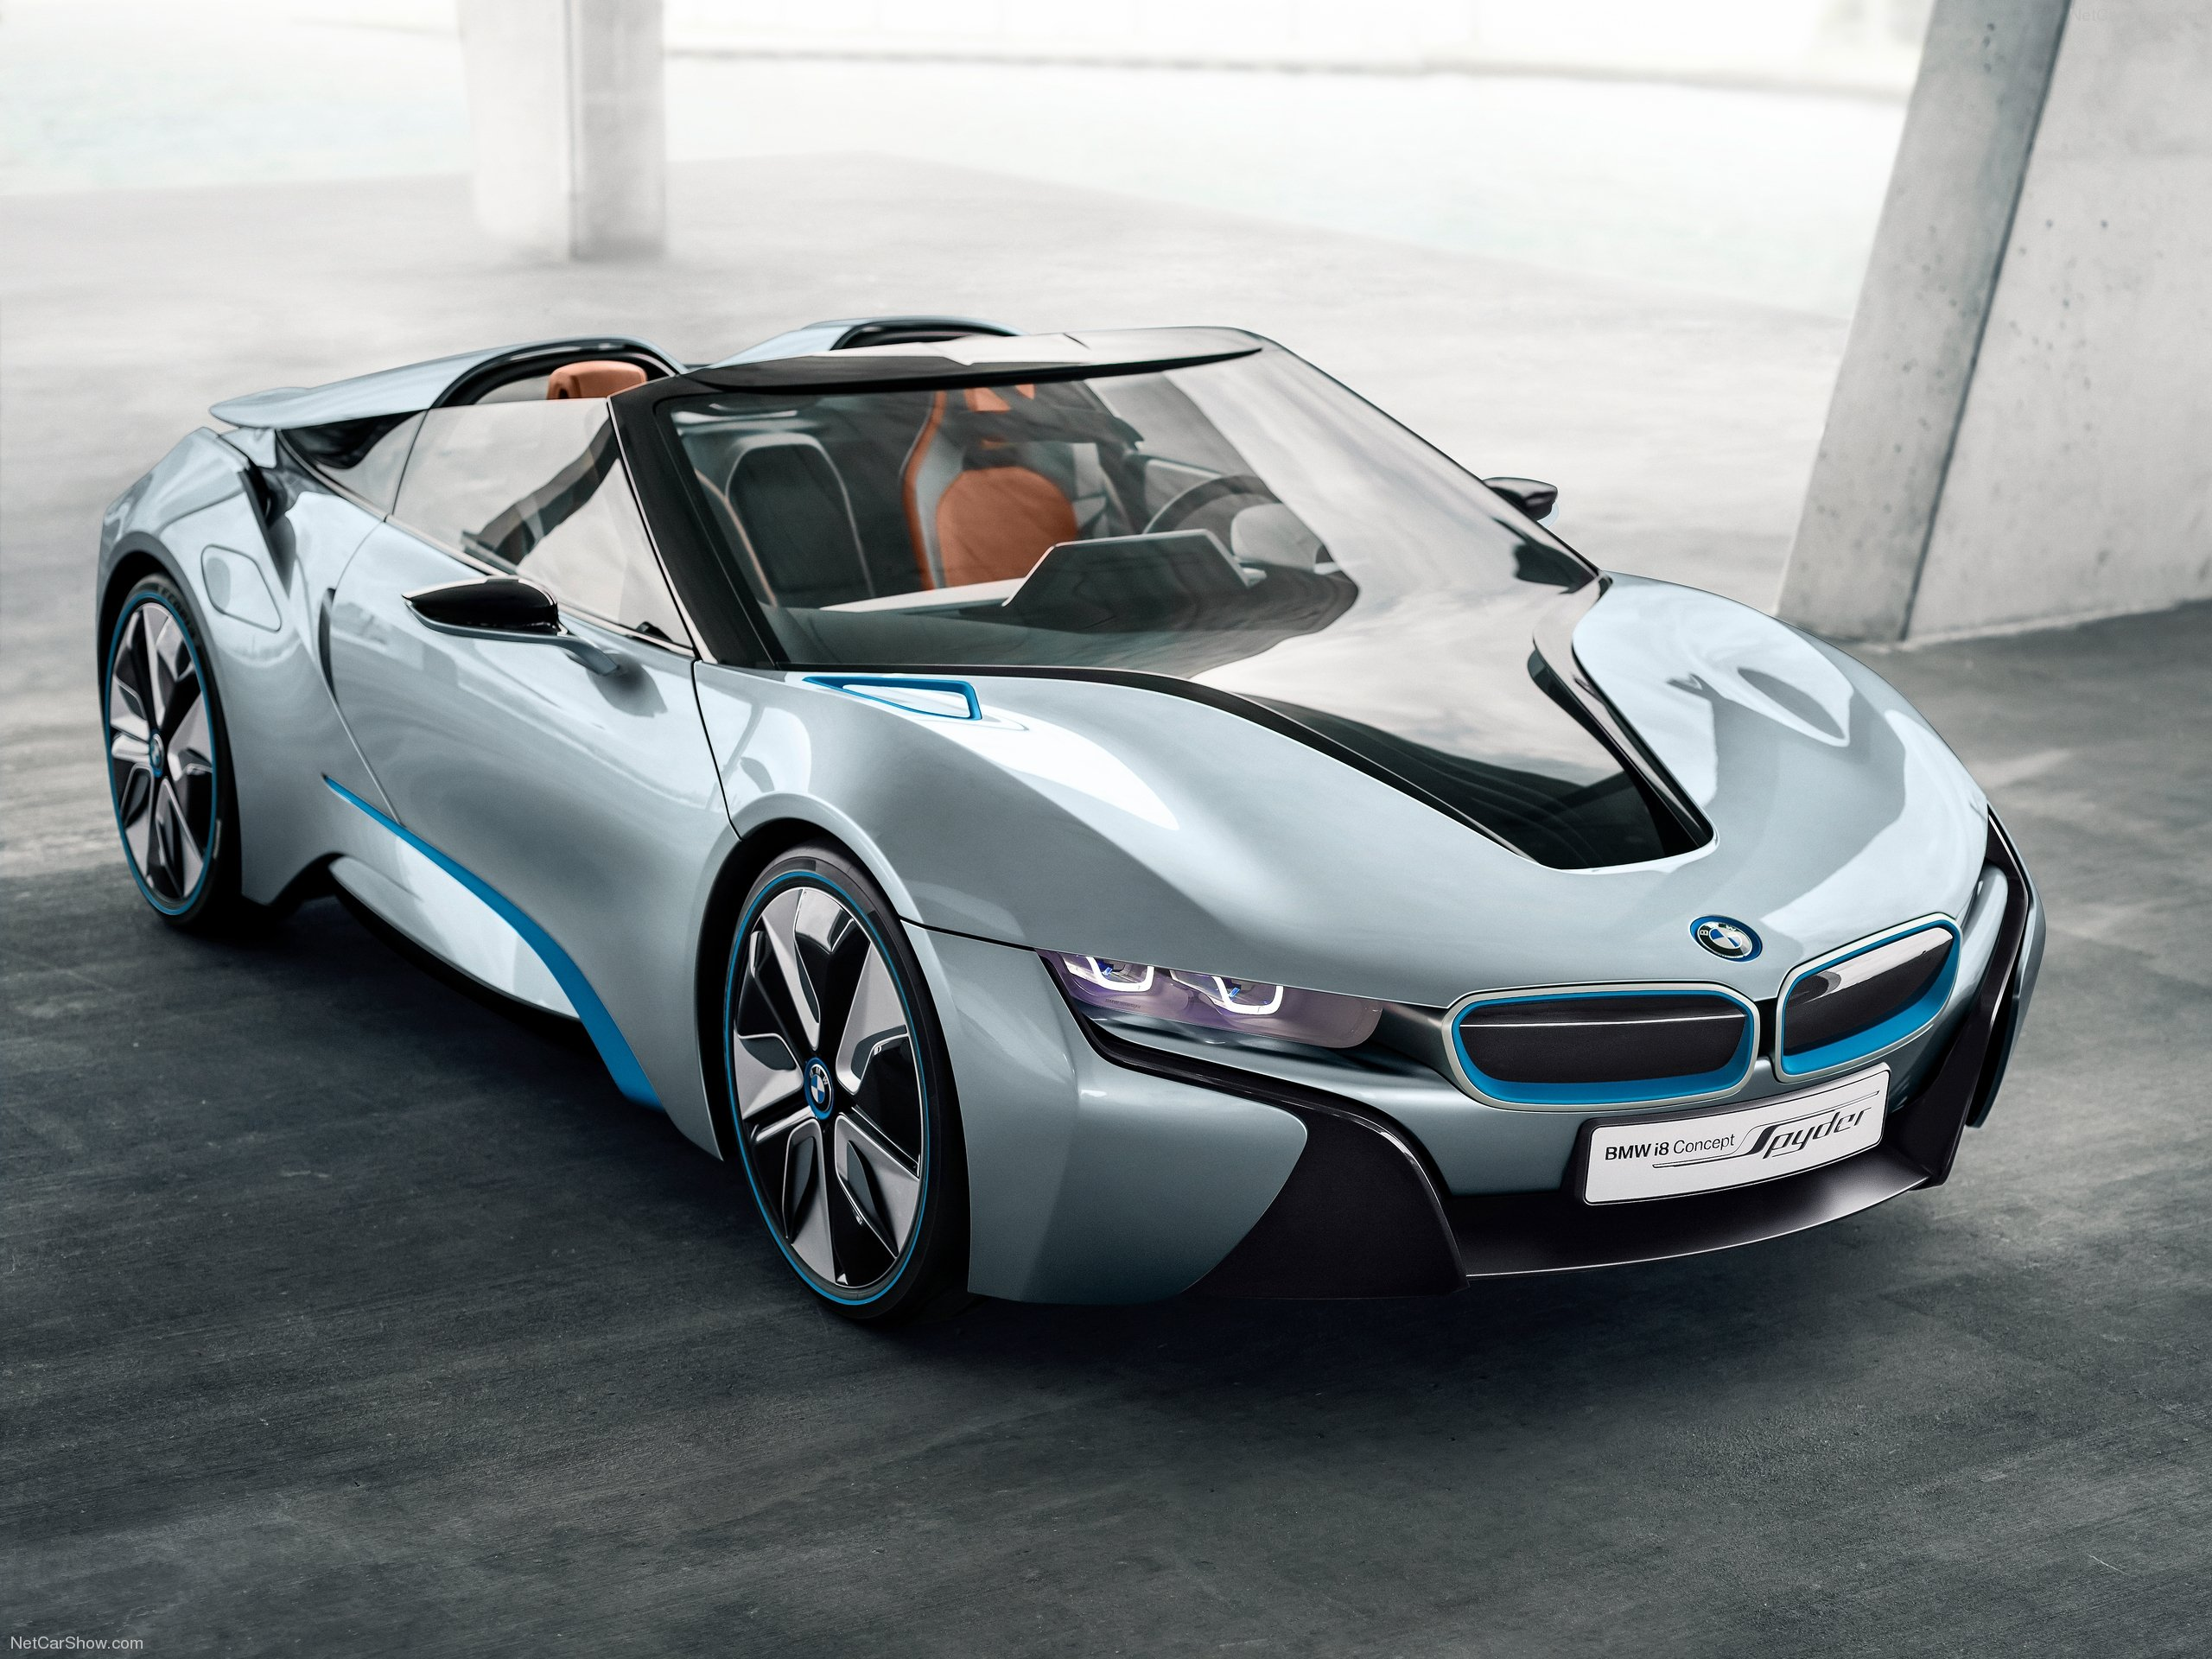 The new BMW i8 Spyder  maujjo about fashion